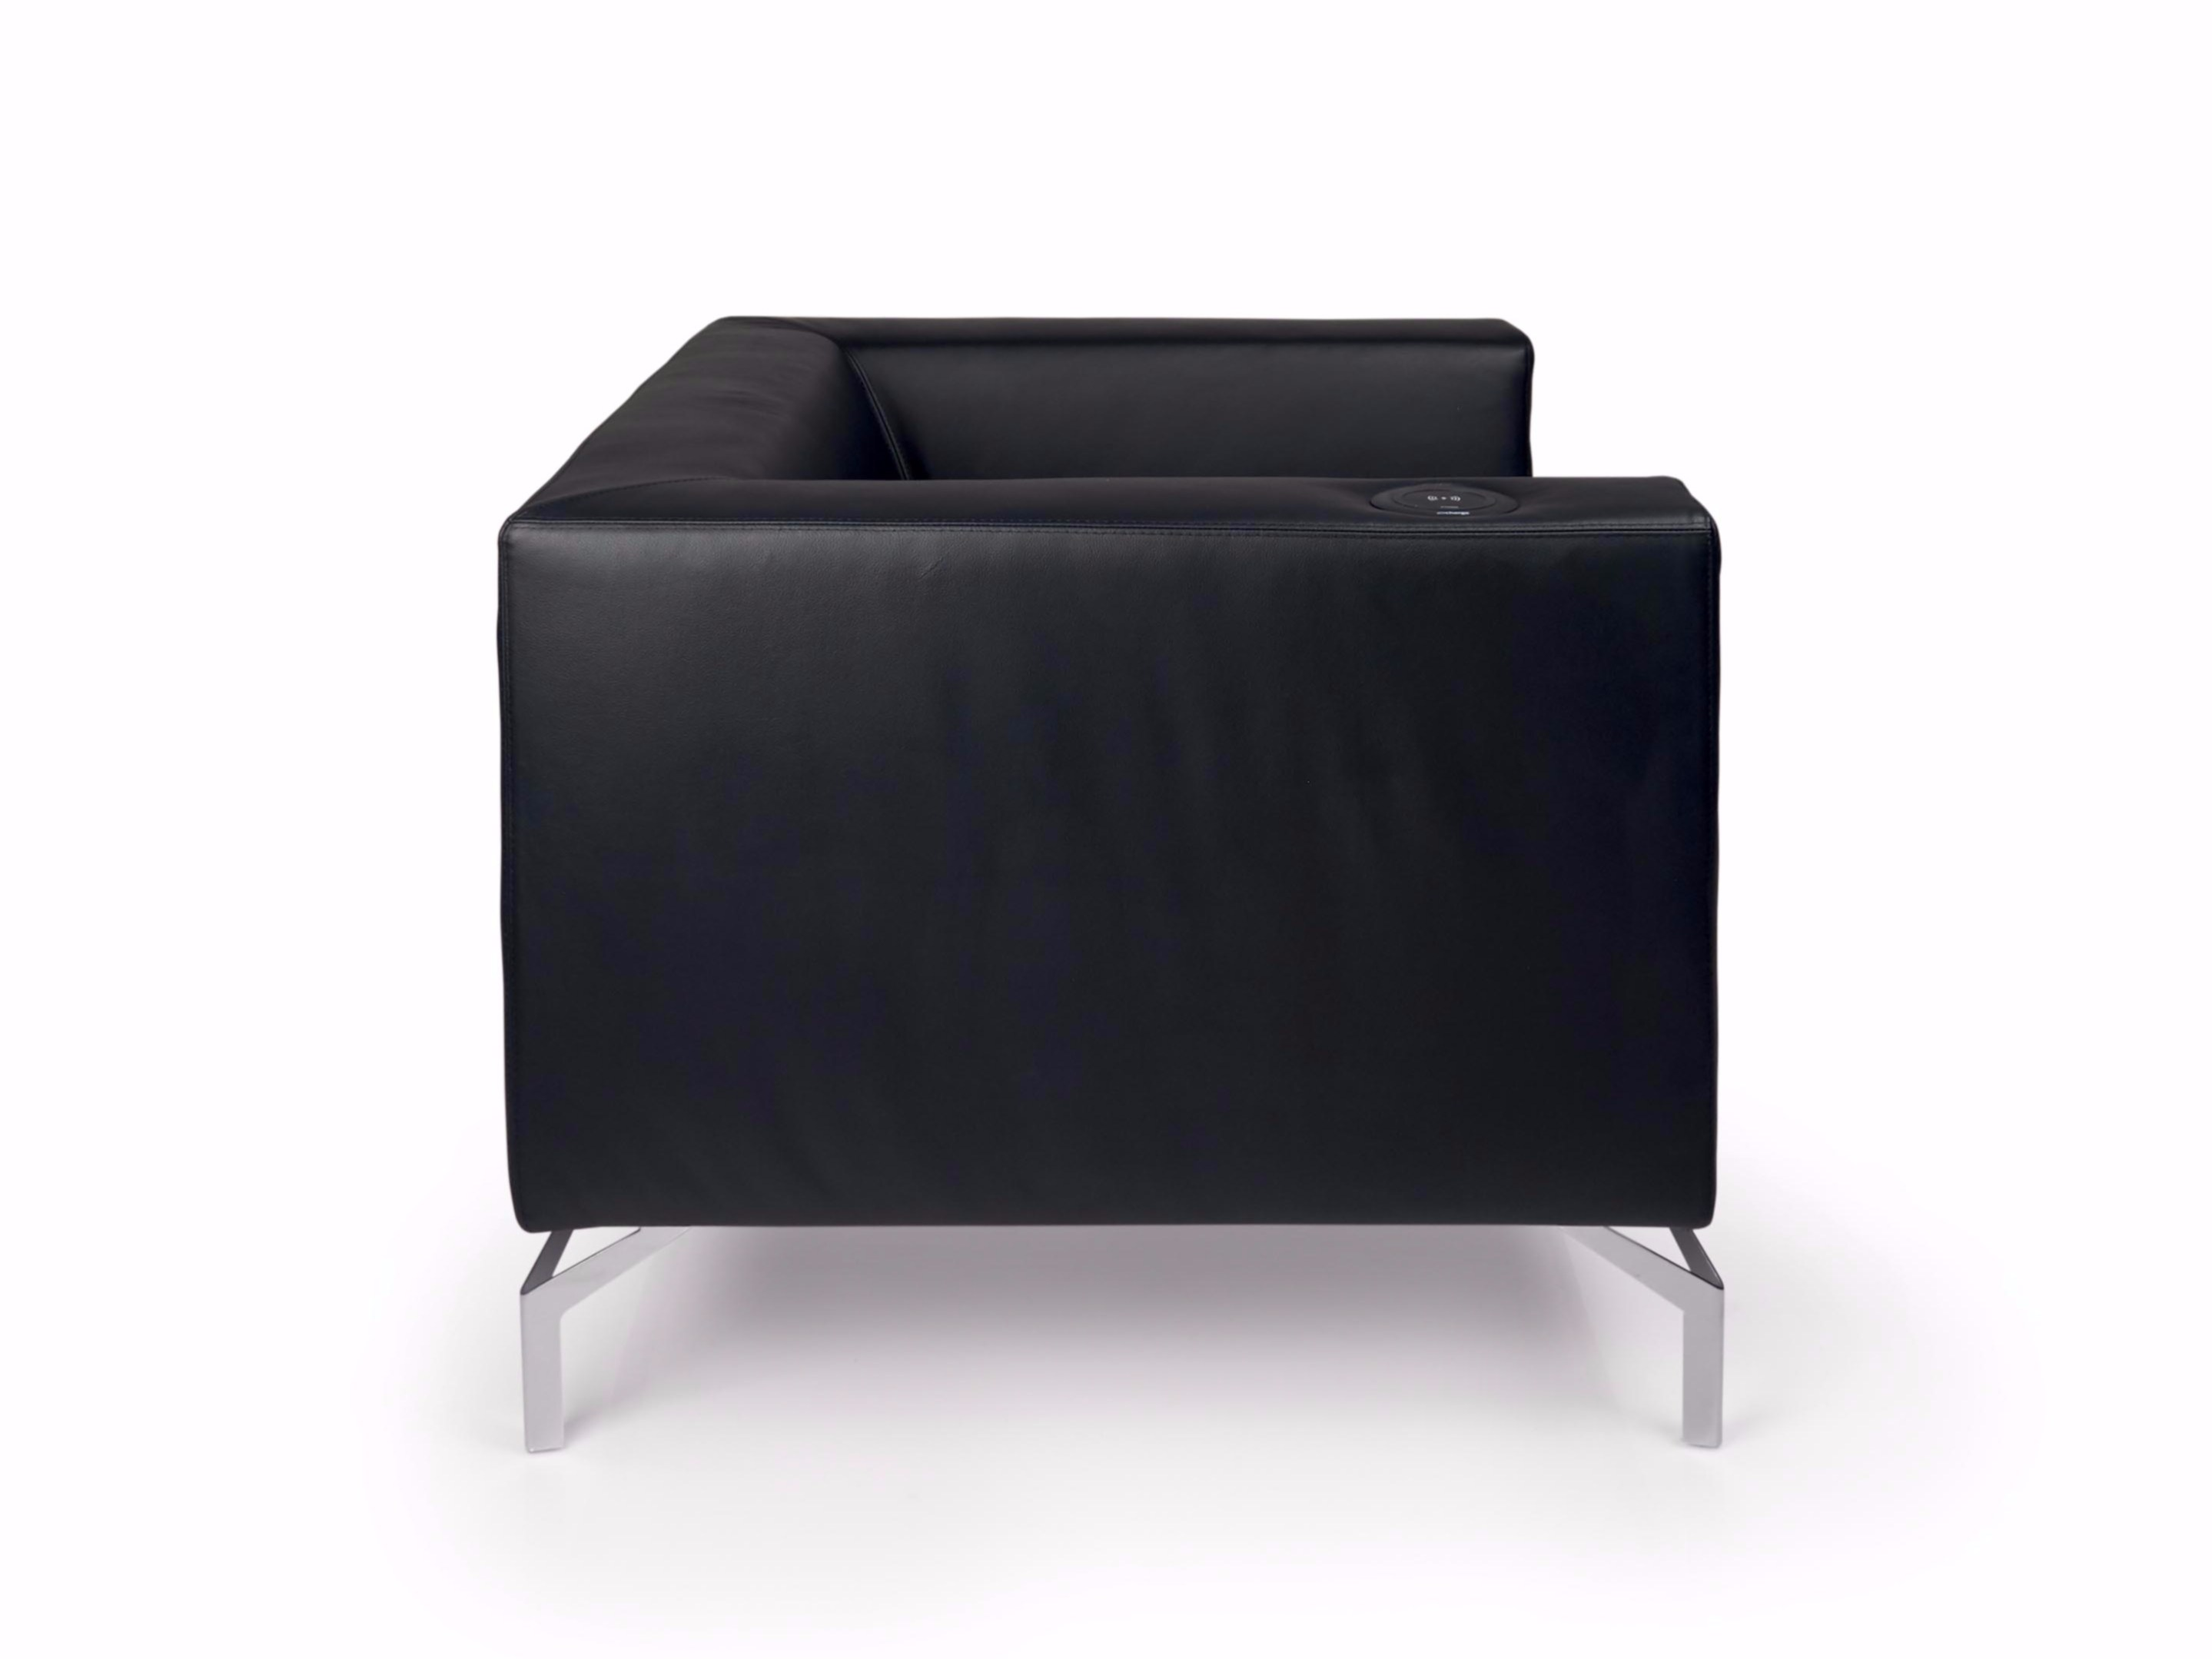 Fauteuil Chic Chic Fauteuil Collection Chic By Luxy Design Air Design